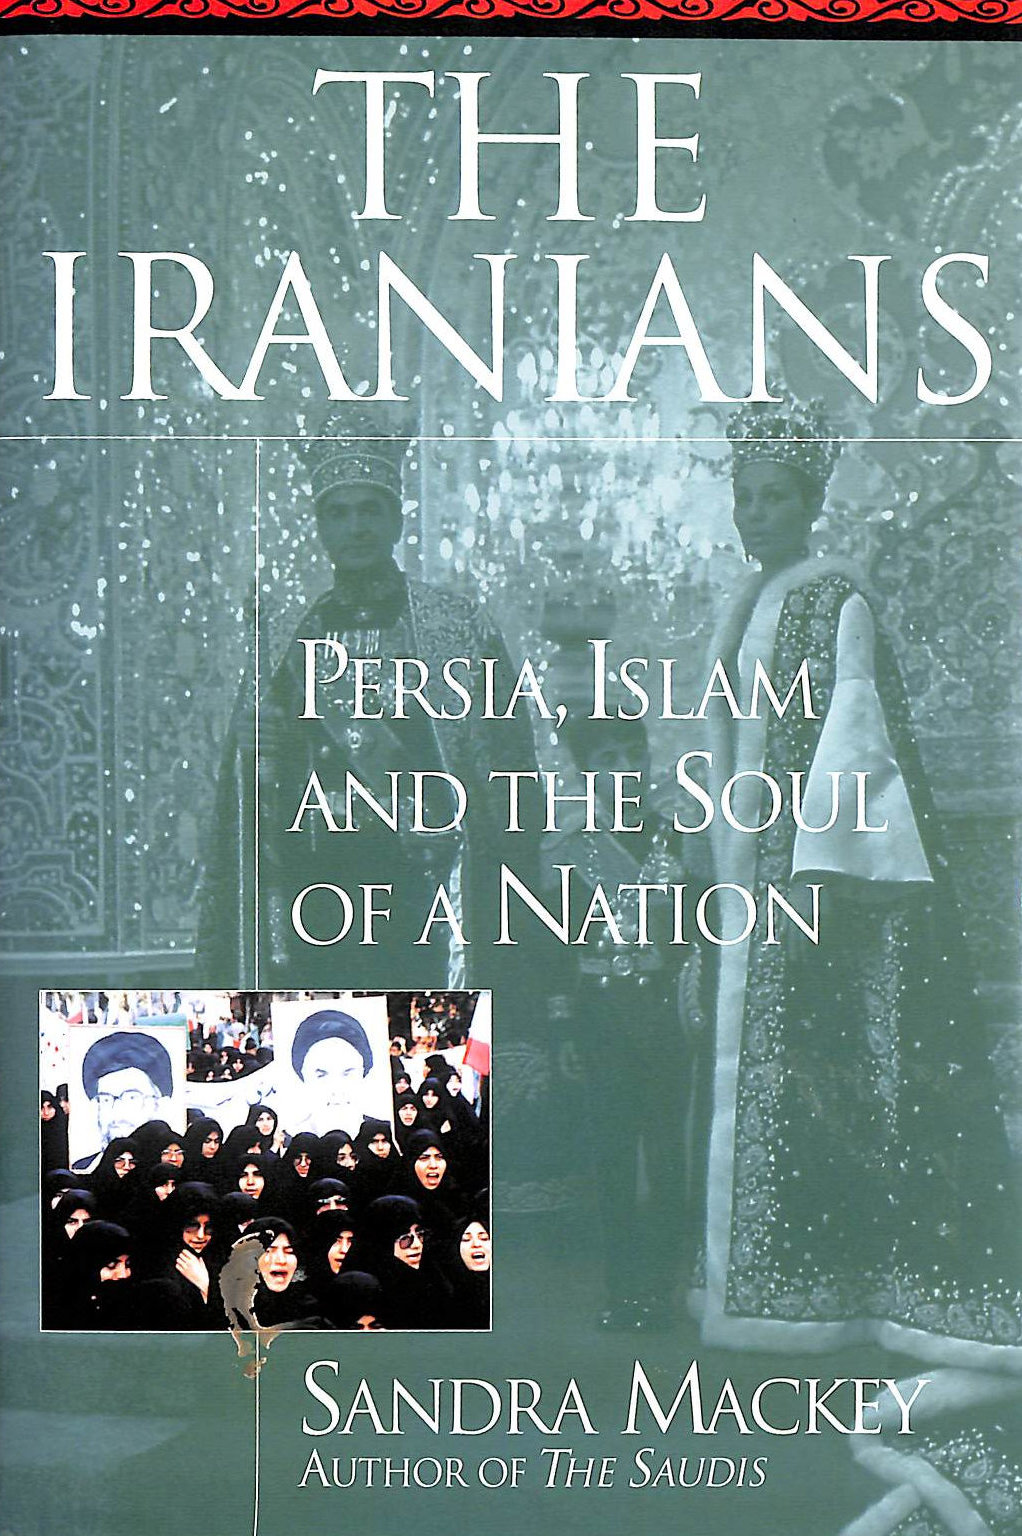 Image for The Iranians: Persia, Islam, And The Soul Of A Nation